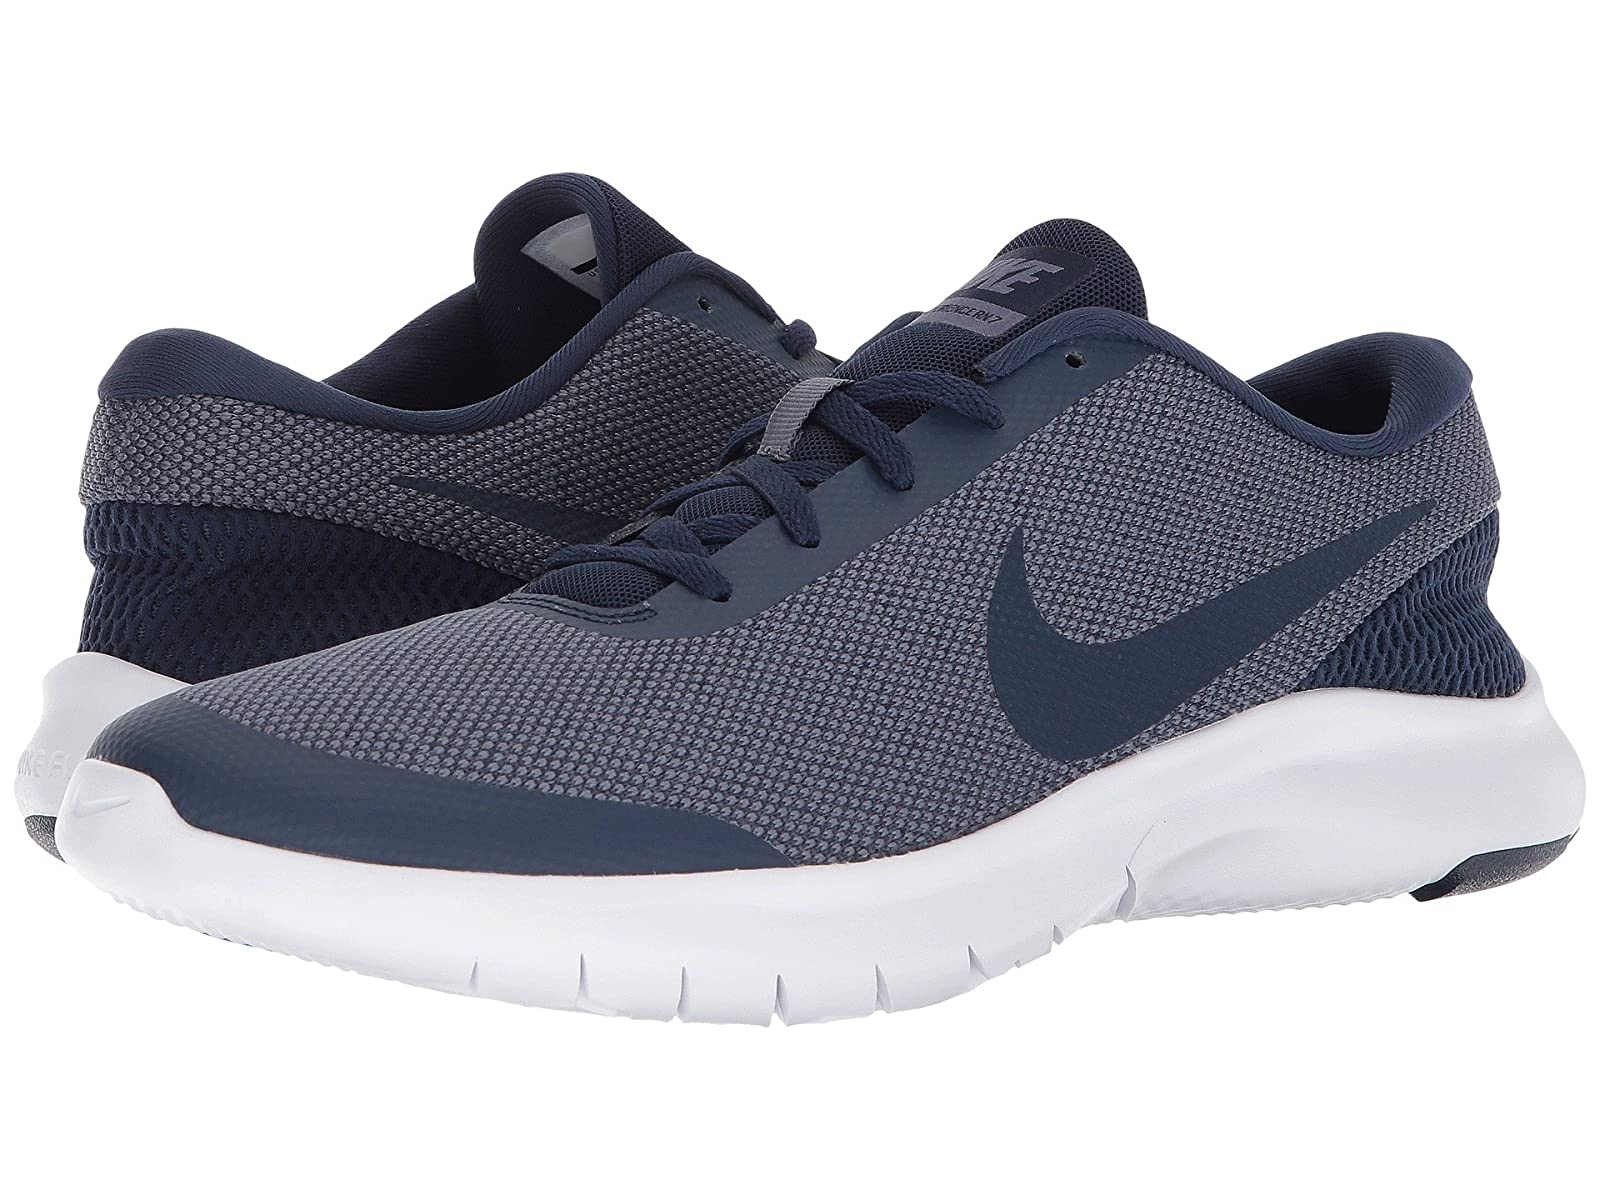 Nike Flex Experience RN 7Atmospheric grades have affordable shoes